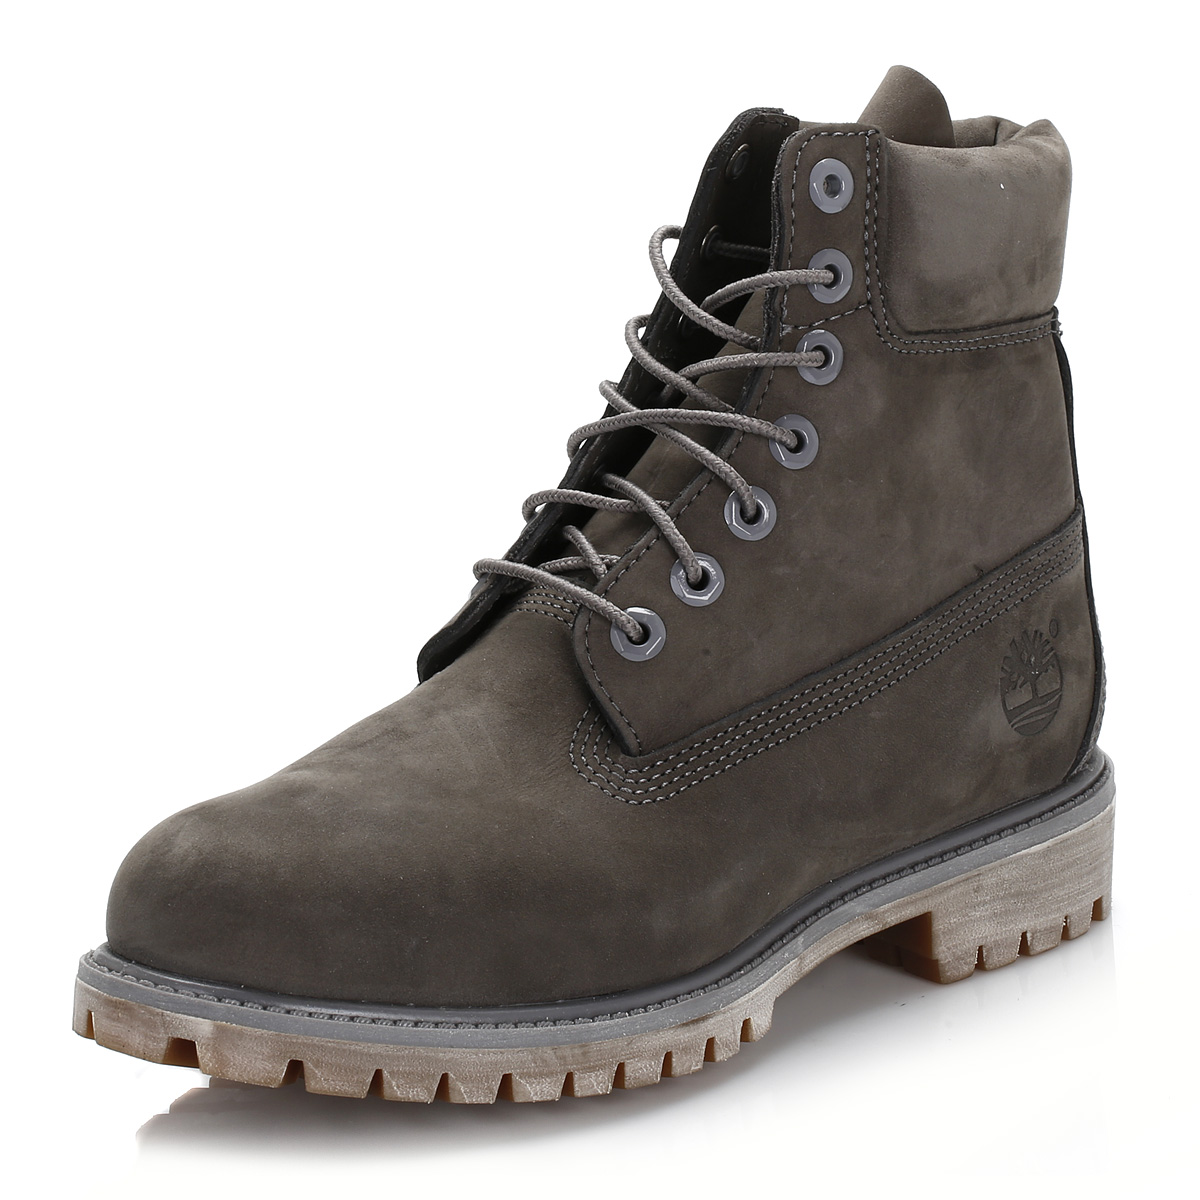 timberland mens boots grey 6 inch waterproof laceup. Black Bedroom Furniture Sets. Home Design Ideas